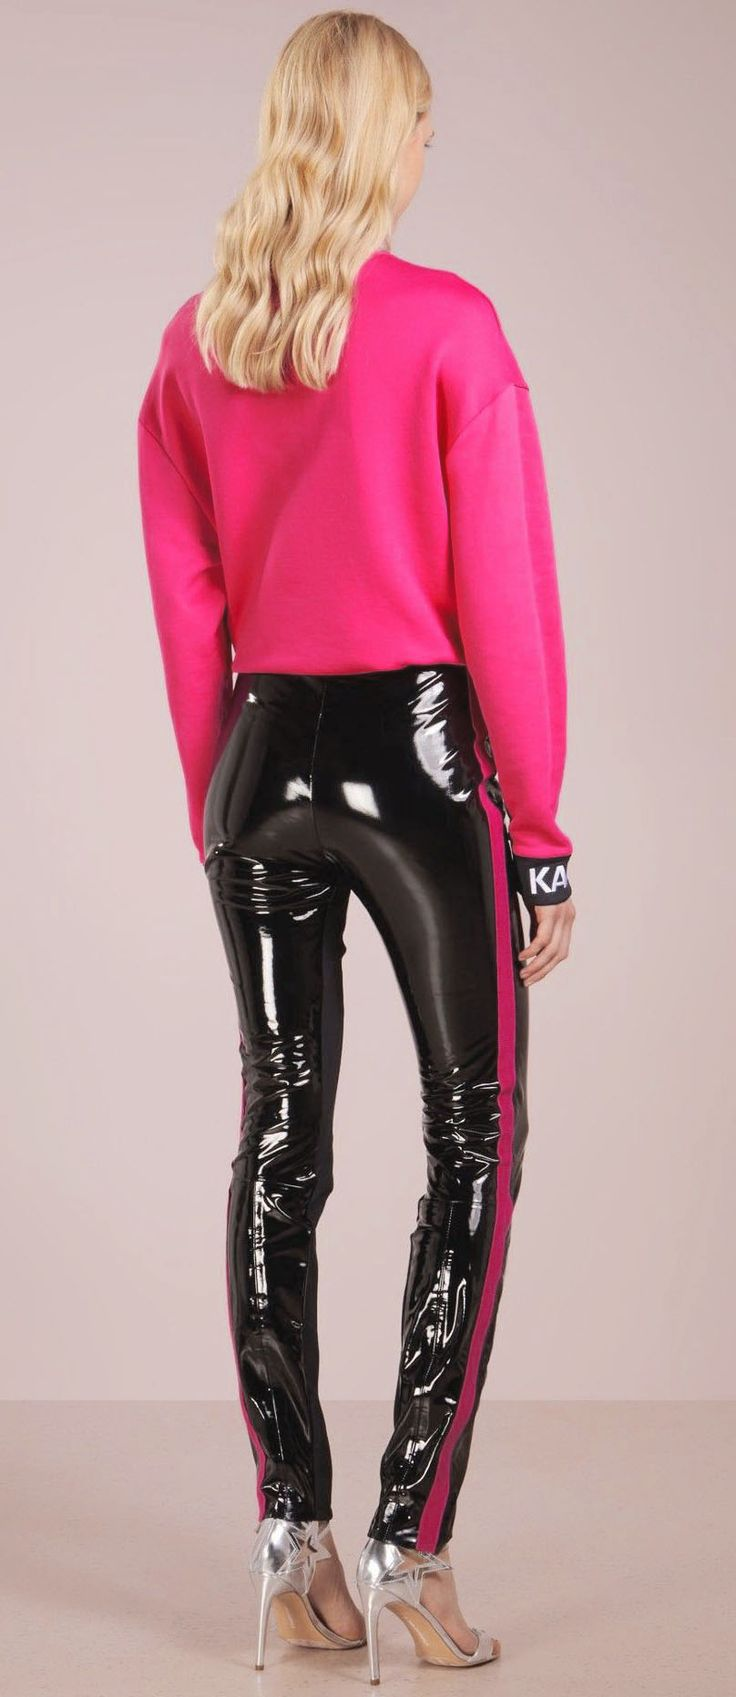 Pin By Ltx Boy On Pvc Jeans And Trousers Shiny Leggings